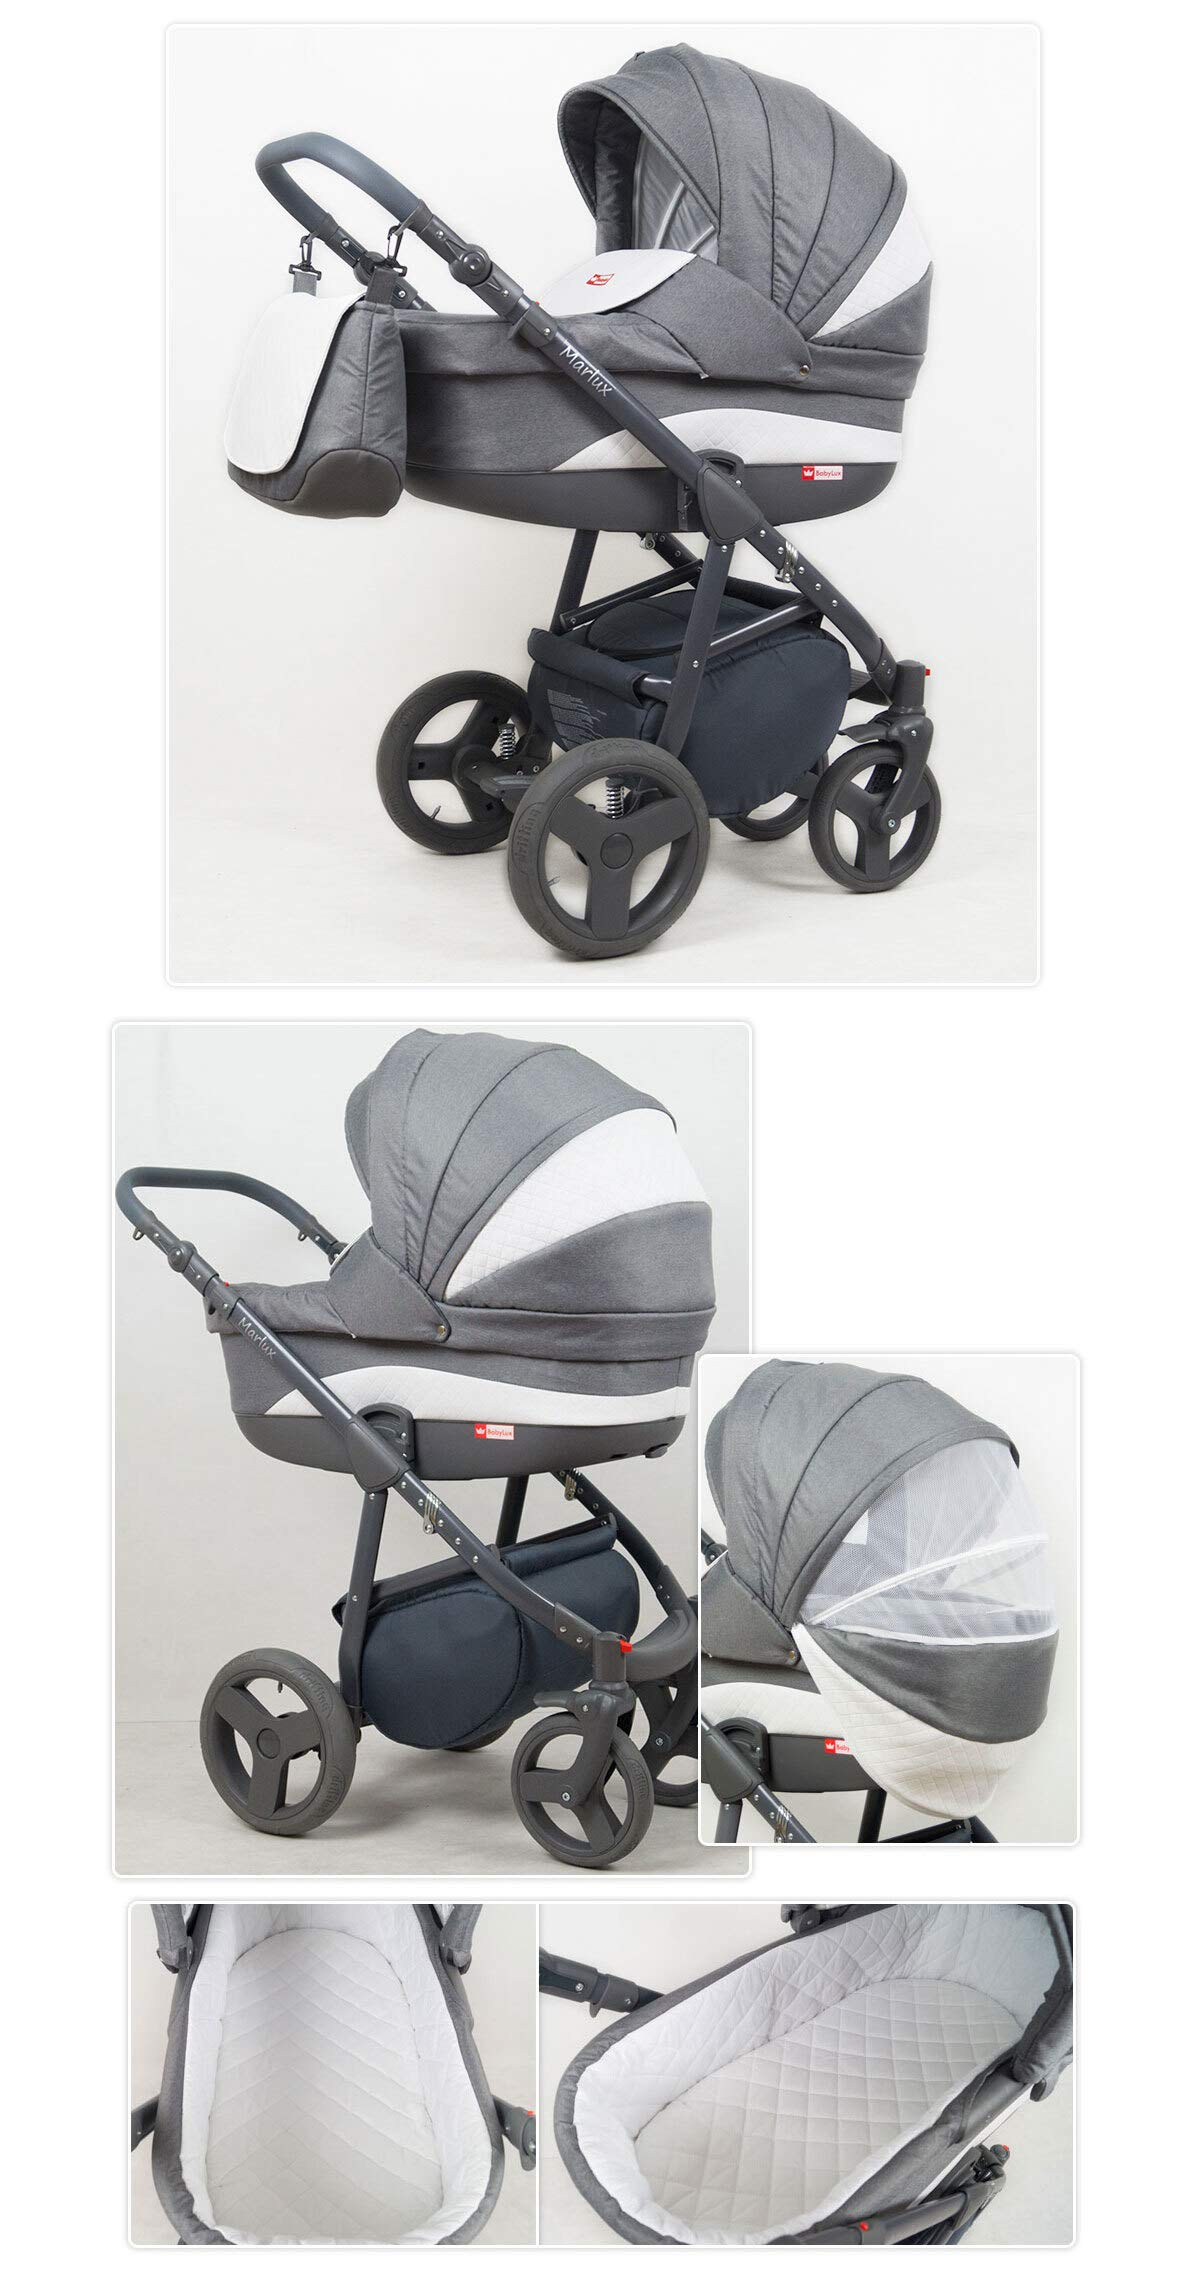 Travel System Stroller Pram Pushchair 2in1 3in1 Set Isofix Marley by SaintBaby Plum 2in1 Without Baby seat SaintBaby 3in1 or 2in1 Selectable. At 3in1 you will also receive the car seat (baby seat). Of course you get the baby tub (classic pram) as well as the buggy attachment (sports seat) no matter if 2in1 or 3in1. The car naturally complies with the EU safety standard EN1888. During production and before shipment, each wagon is carefully inspected so that you can be sure you have one of the best wagons. Saintbaby stands for all-in-one carefree packages, so you will also receive a diaper bag in the same colour as the car as well as rain and insect protection free of charge. With all the colours of this pram you will find the pram of your dreams. 4